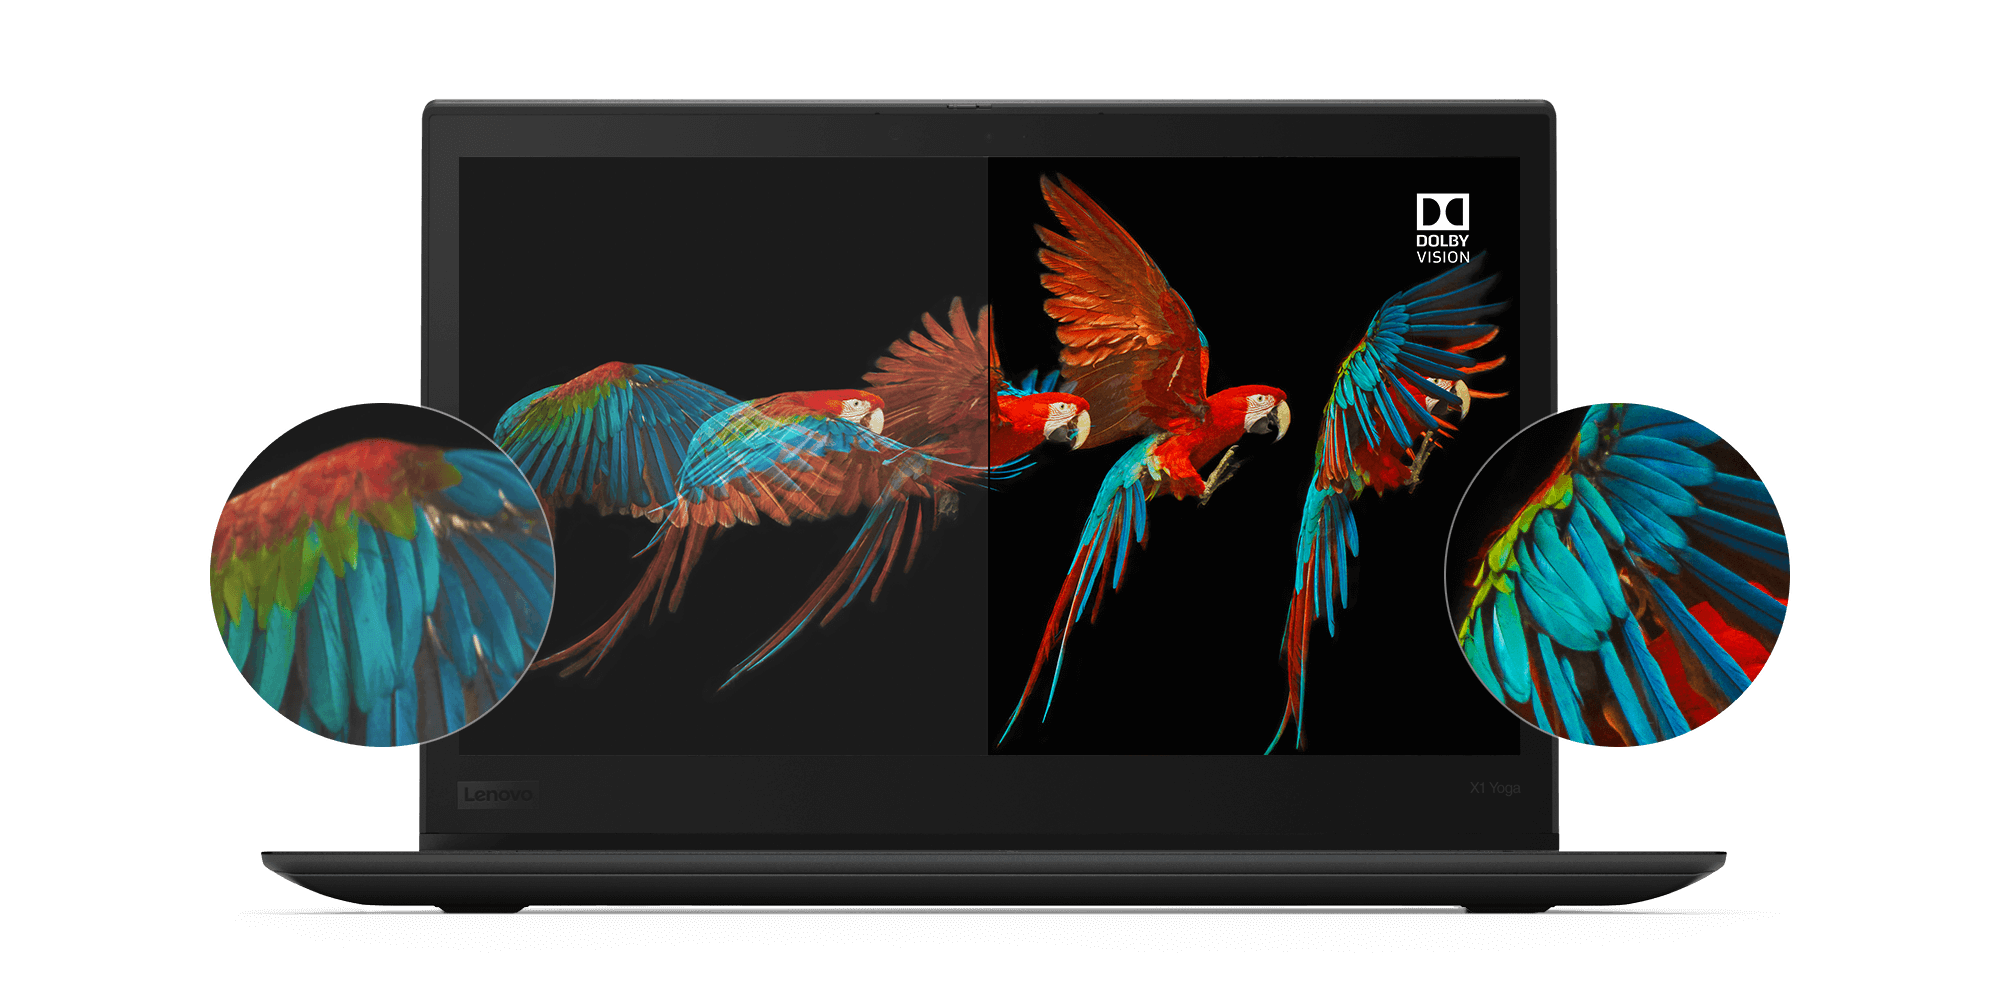 Lenovo ThinkPad X1 Yoga HDR display with Dolby Vision, showing amazing detail and color accuracy of a parrot's wings in flight.